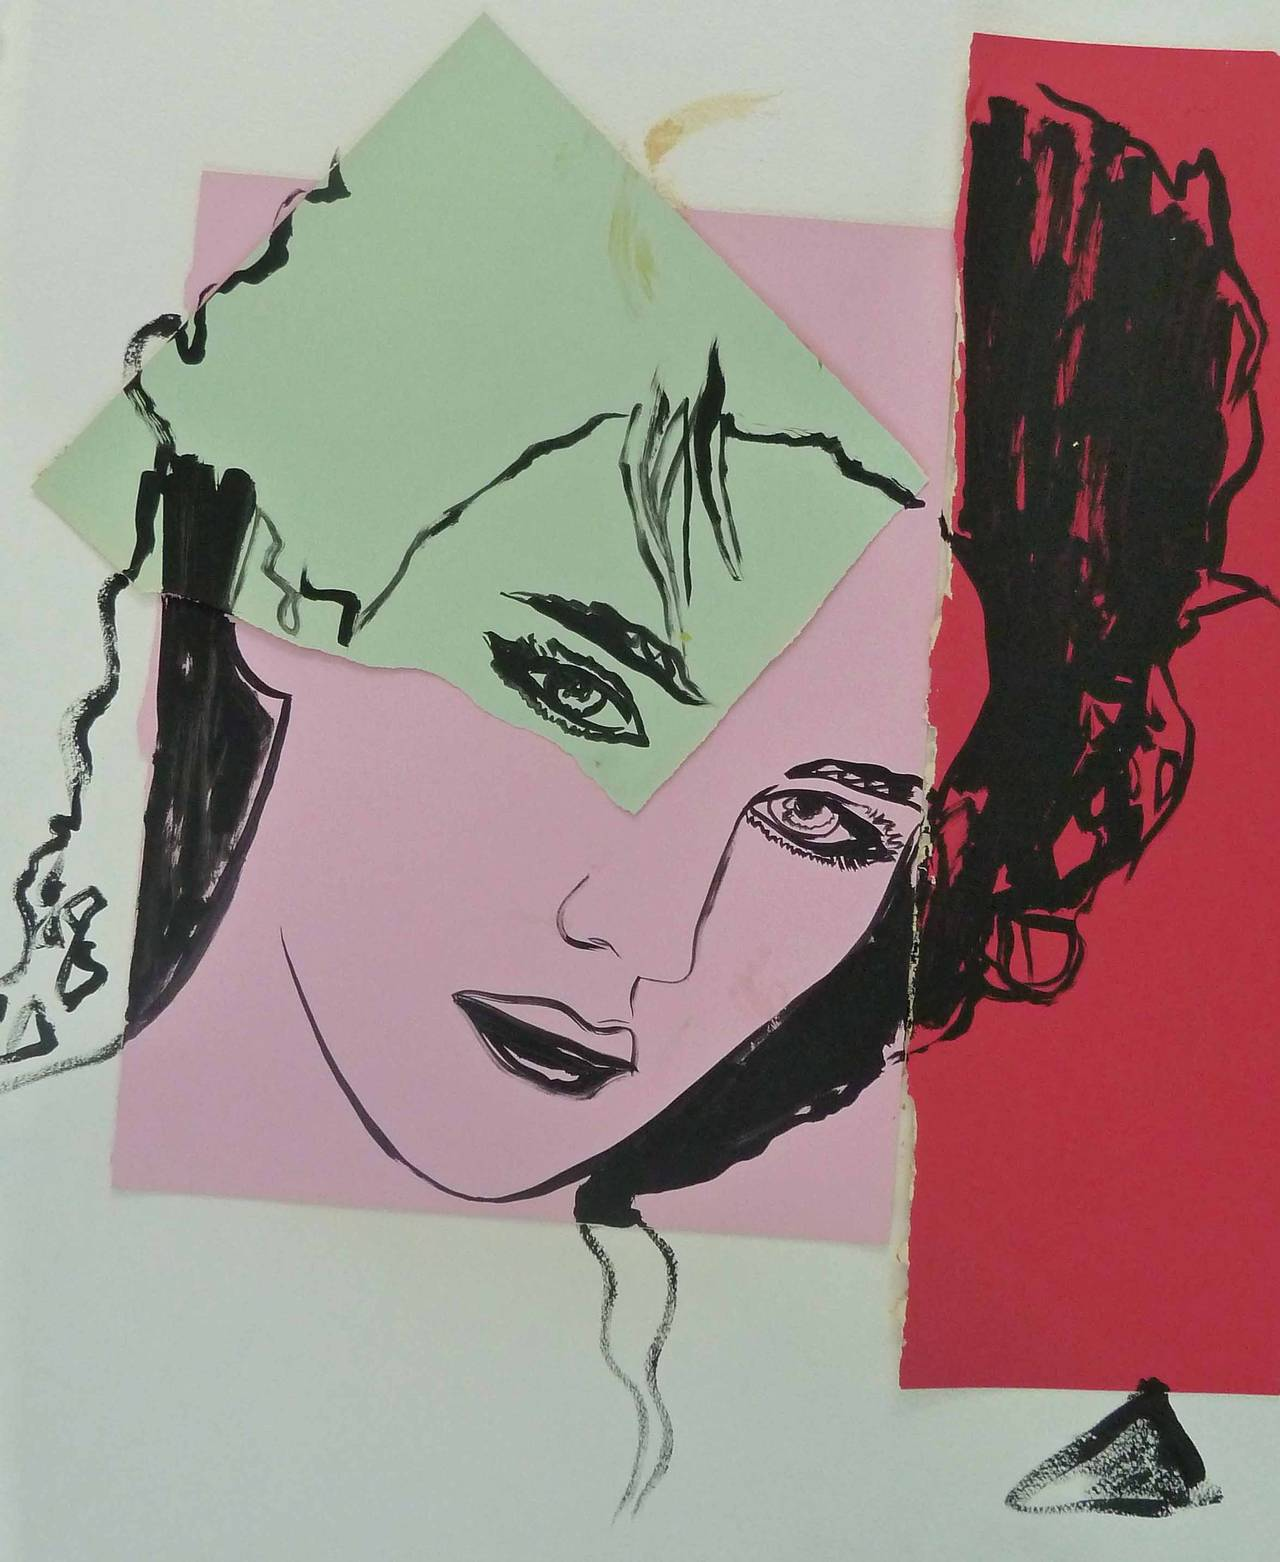 art essay on andy warhol Andy warhol essay contains all information about the creation of artist and his impact on development of pop art.